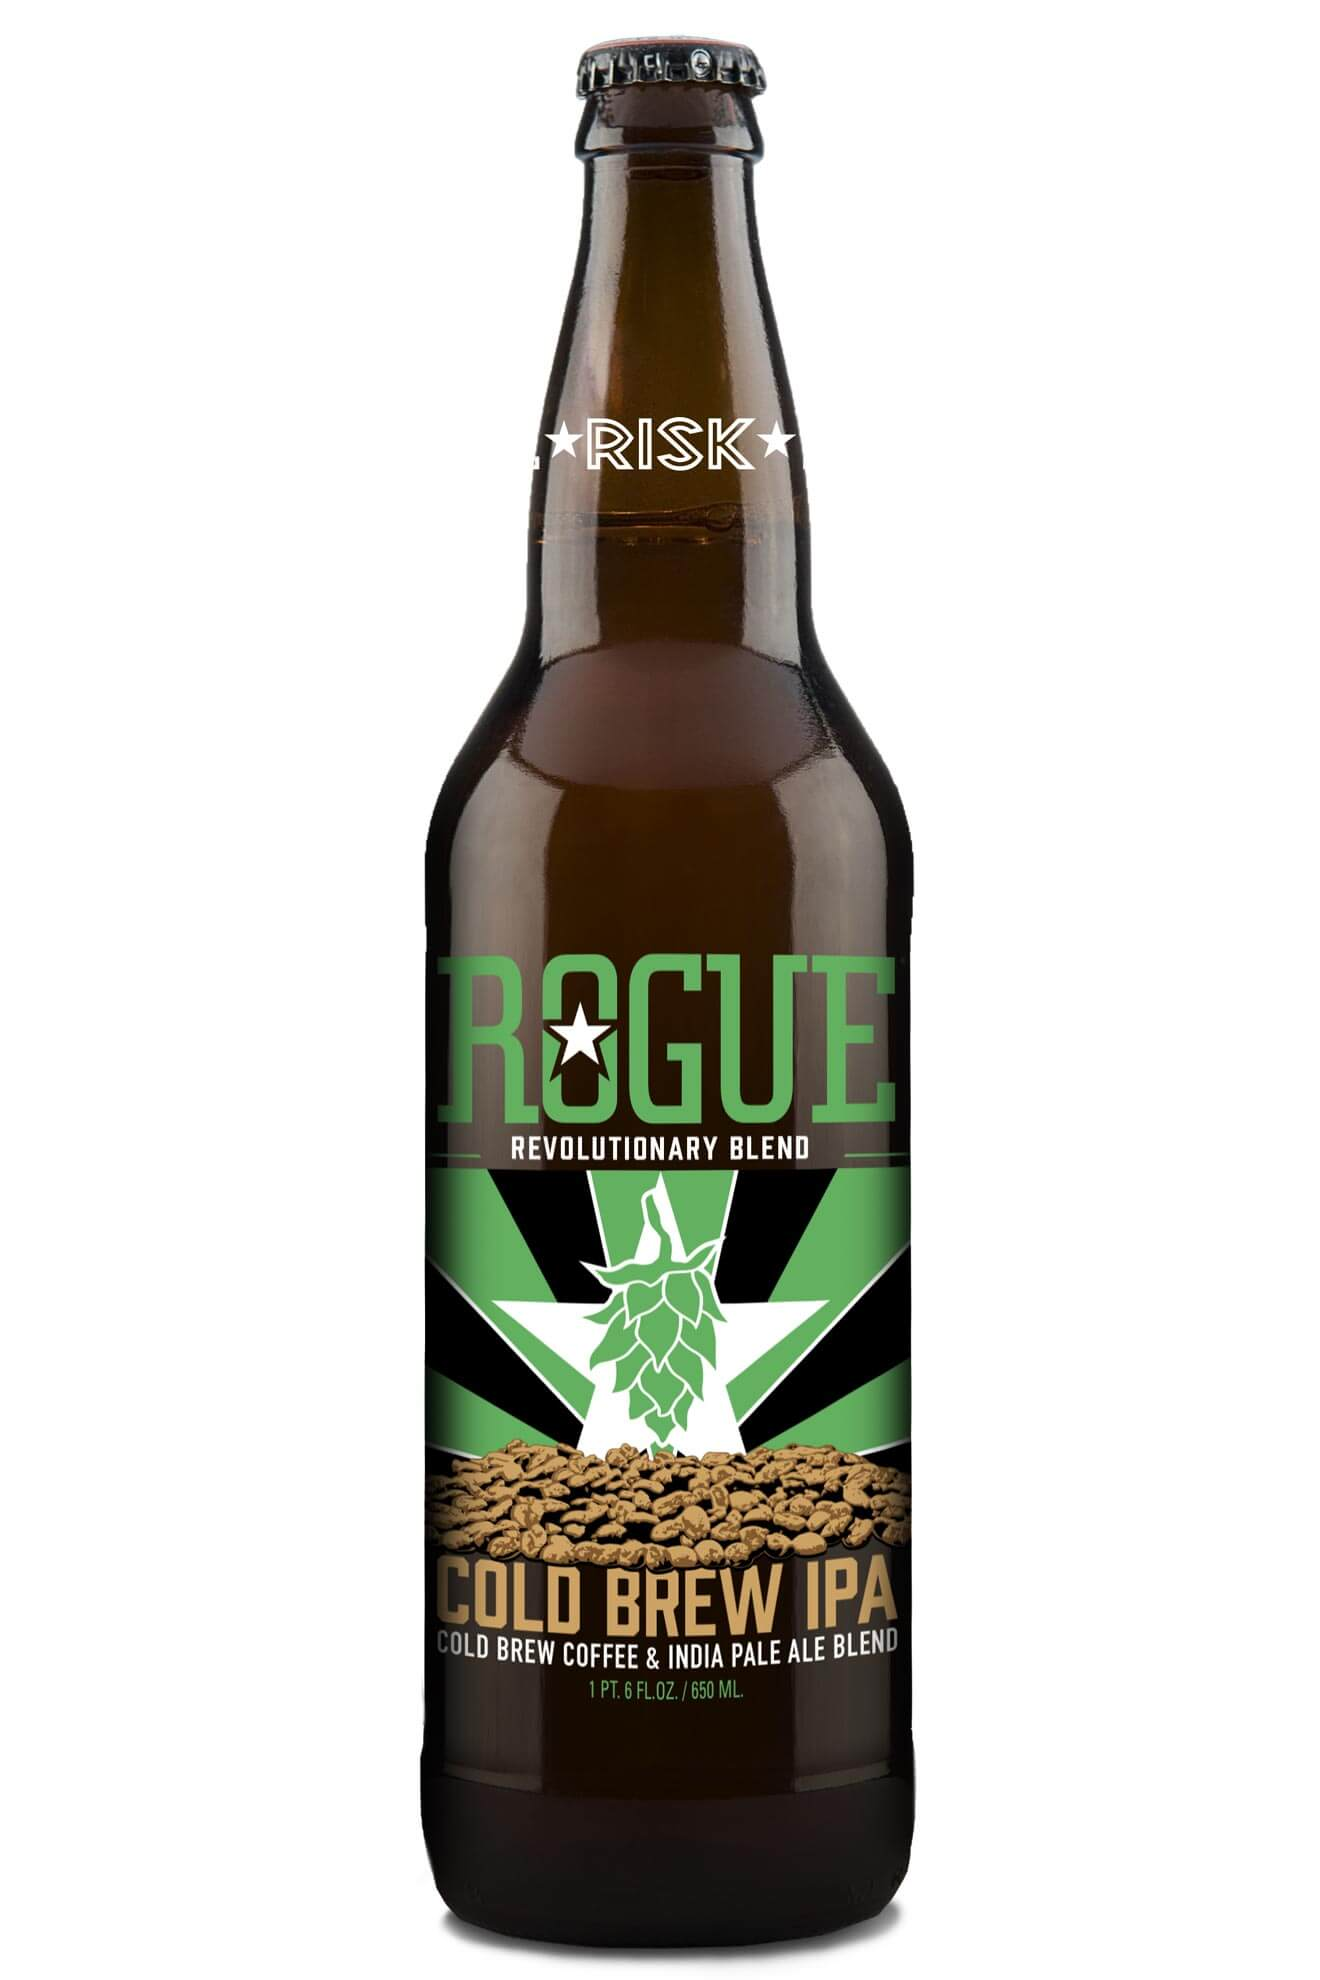 'Cold Brew IPA' Coffee Beer from Rogue Ales, beer news